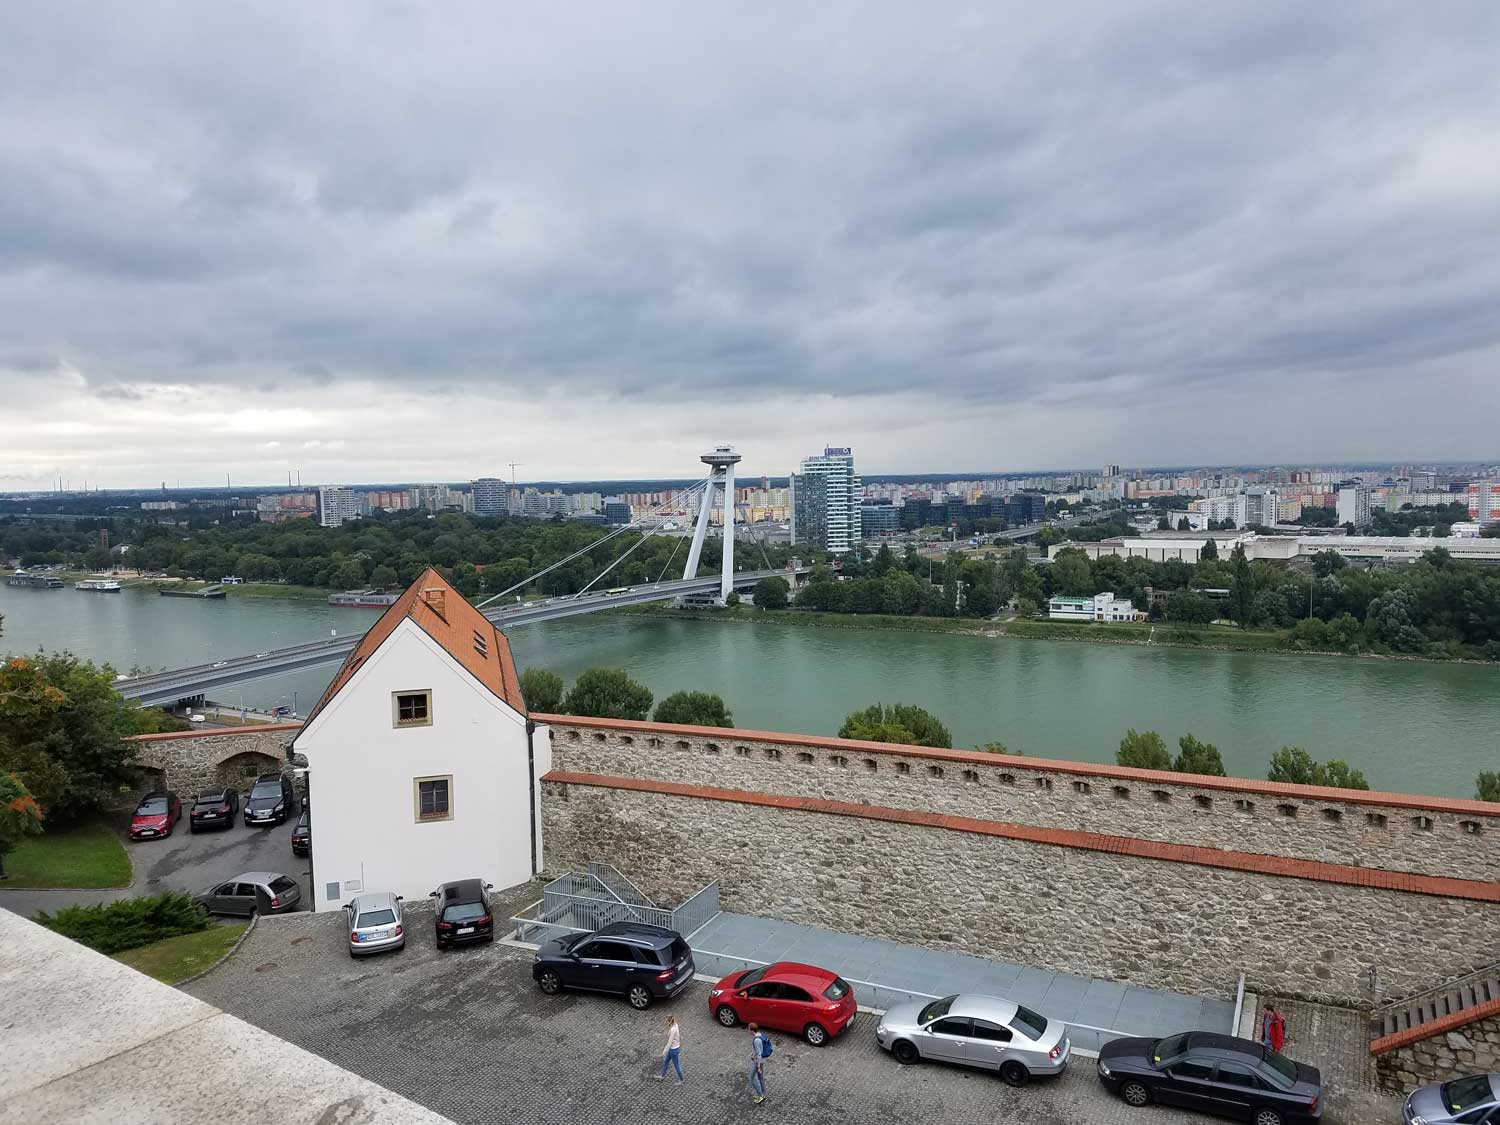 Looking across the Danube toward Austria from Bratislava Castle, which dominates the hilltop looming over the city.